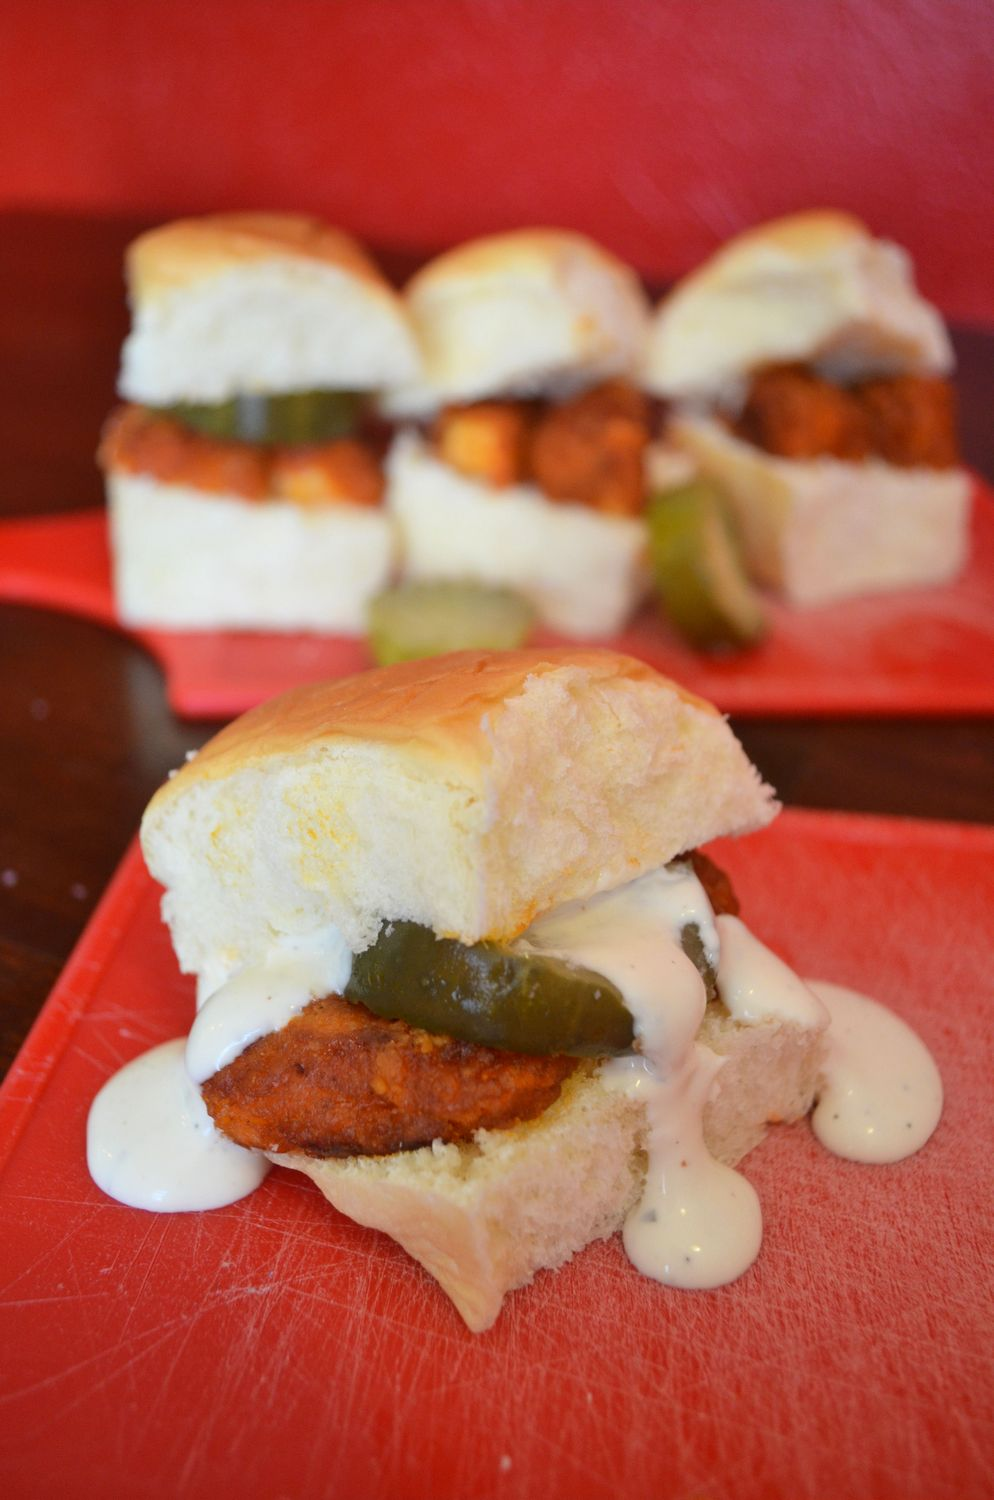 Buffalo Chicken Sliders & Tyson's Project A+